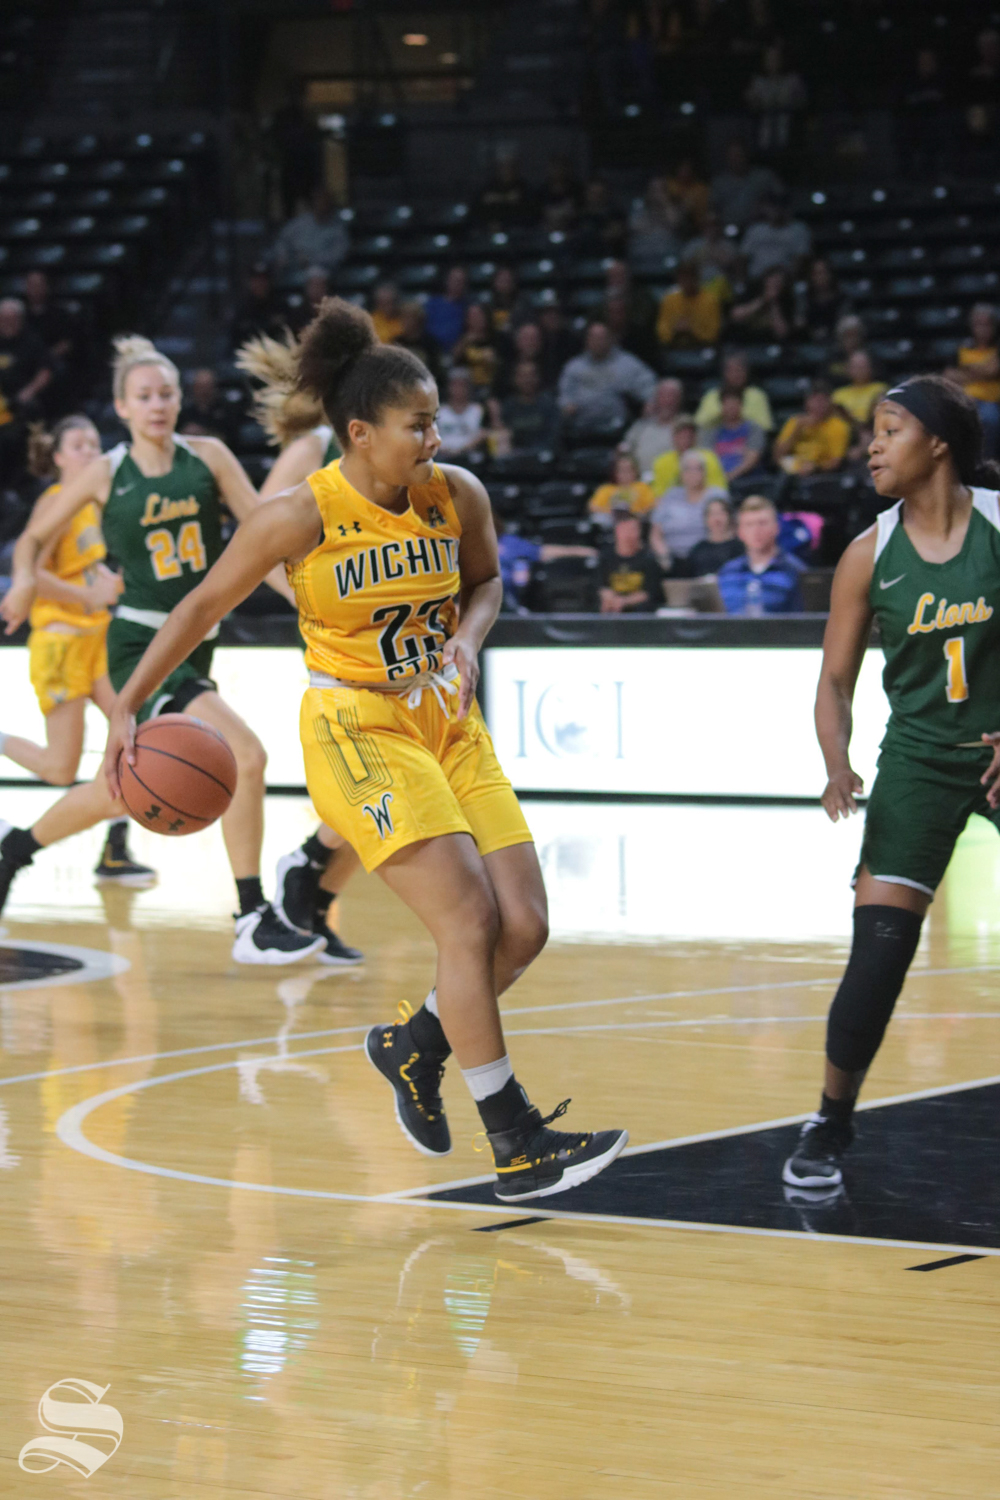 Seraphine+Bastin+dribbles+the+ball+during++the+exhibition+game+against+Missouri+Southern+State+on+November+1.